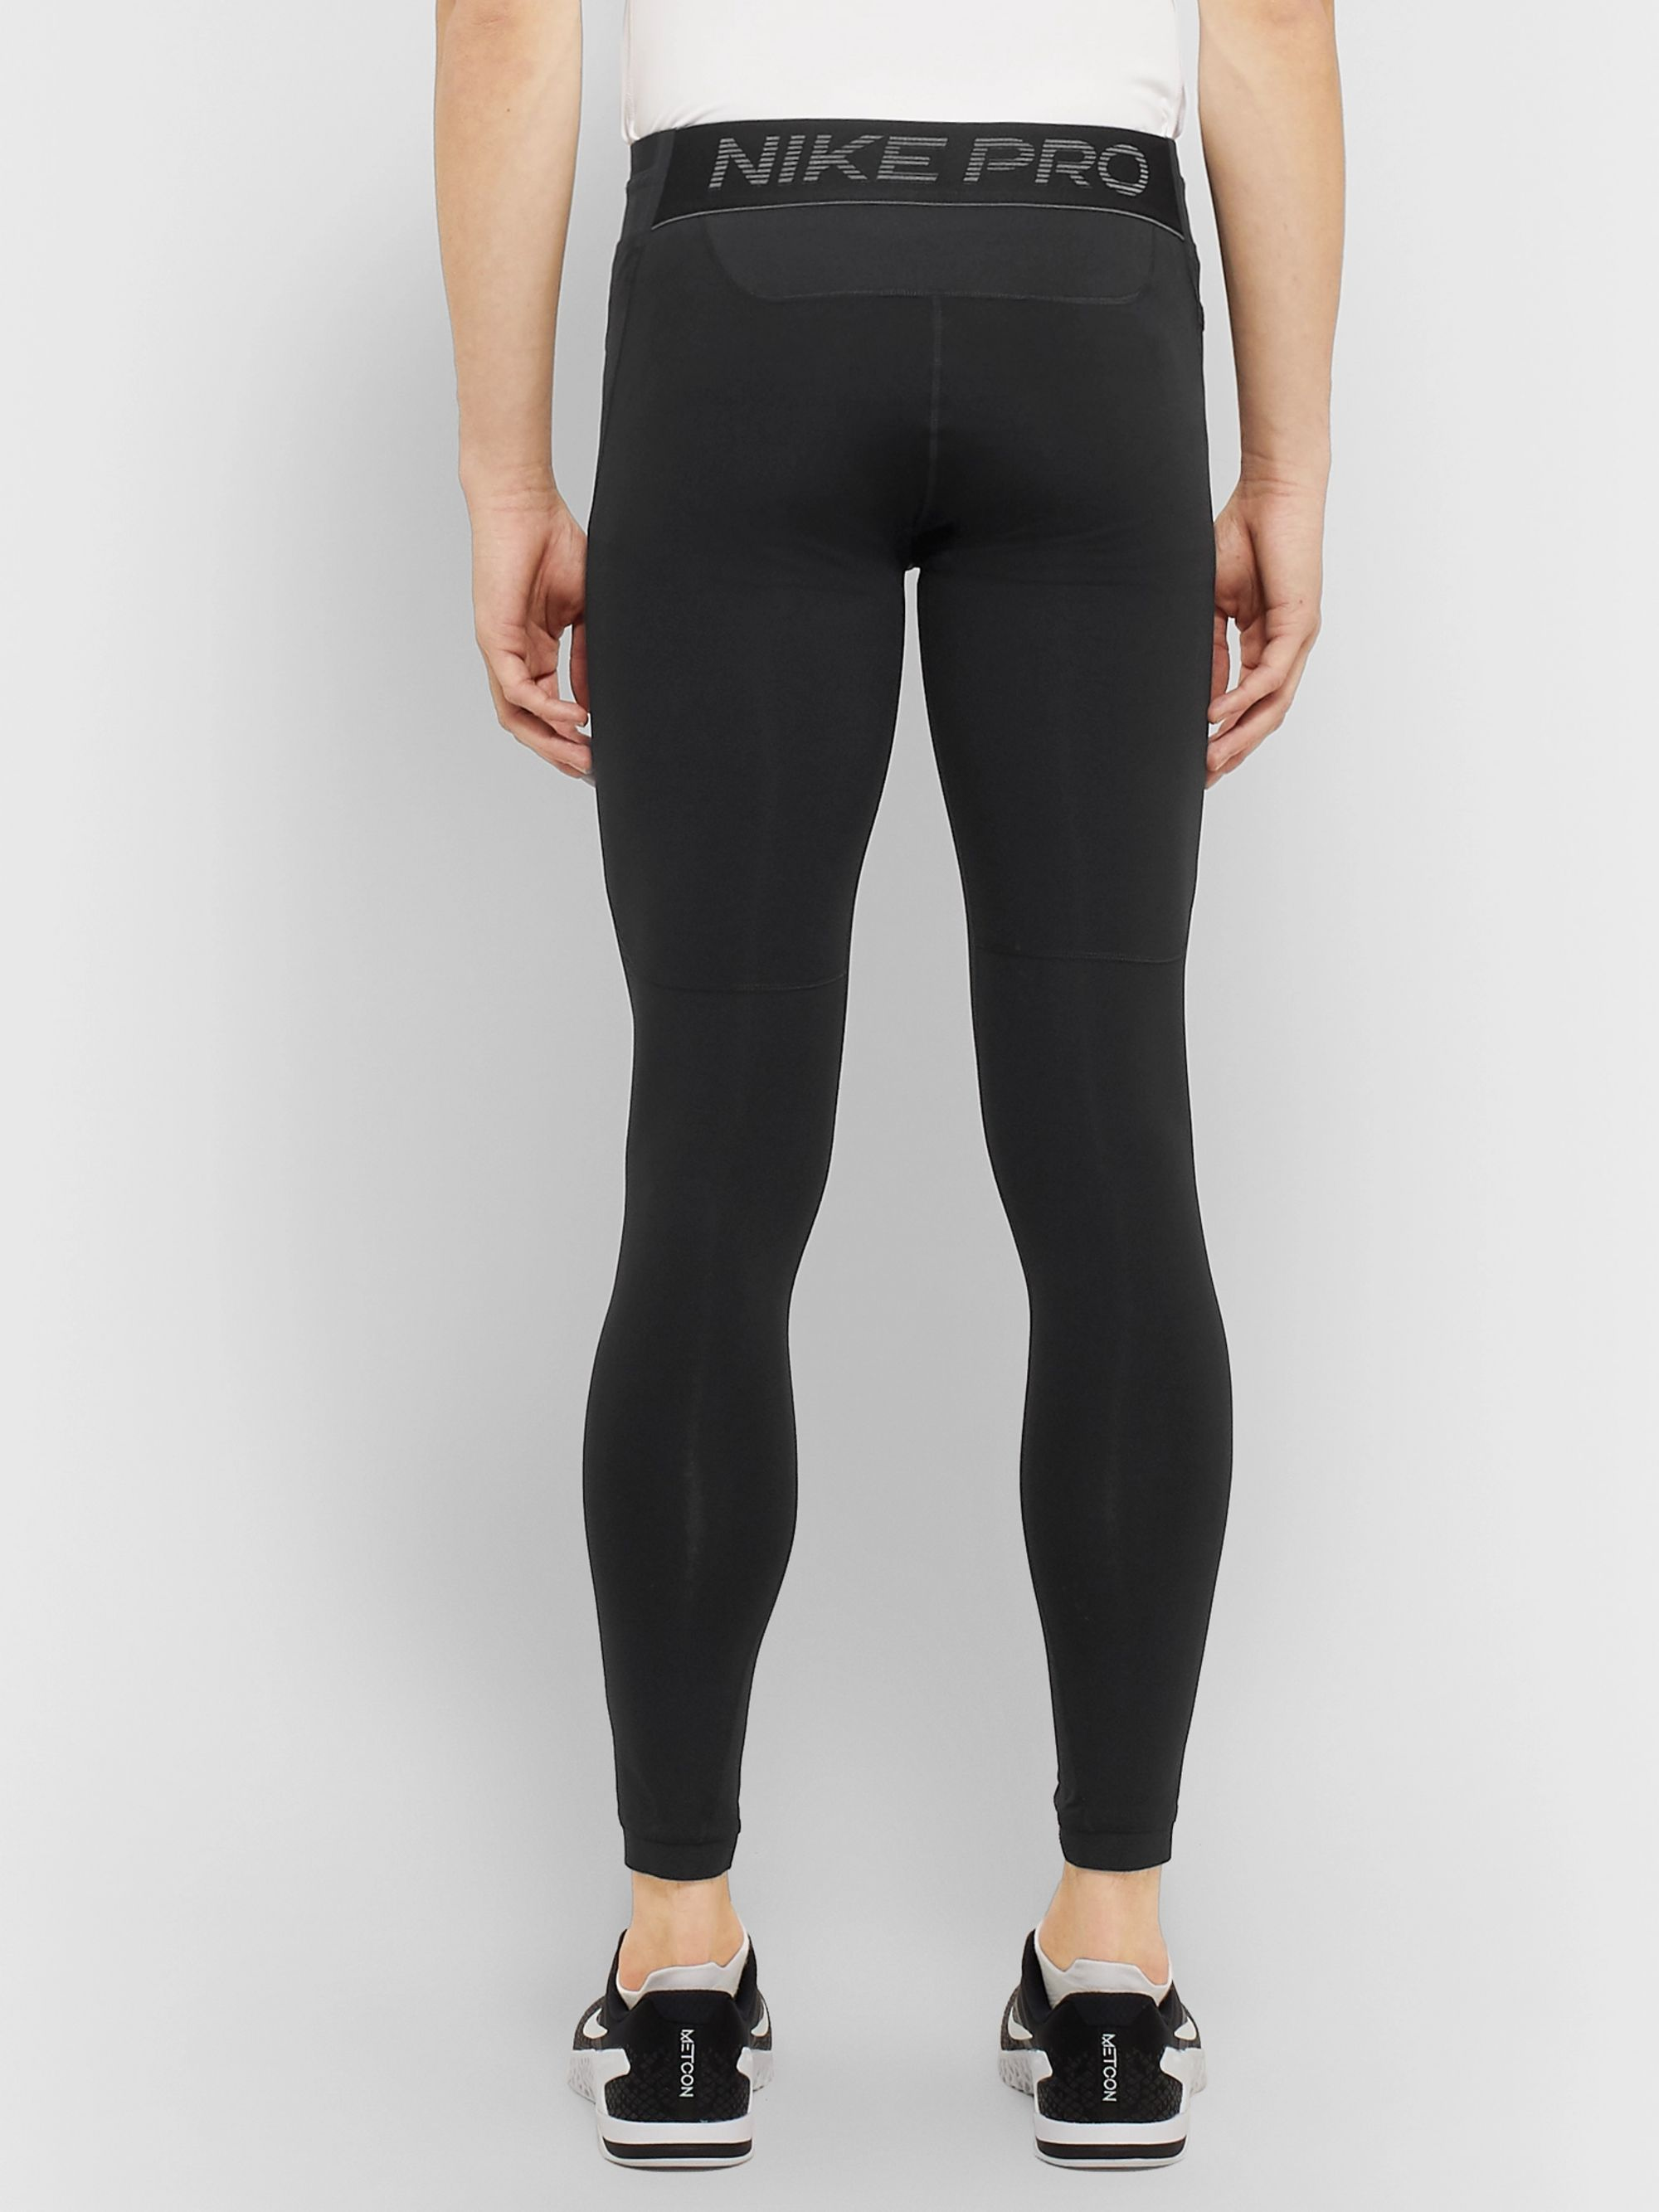 Nike Training Pro Dri-FIT Tights